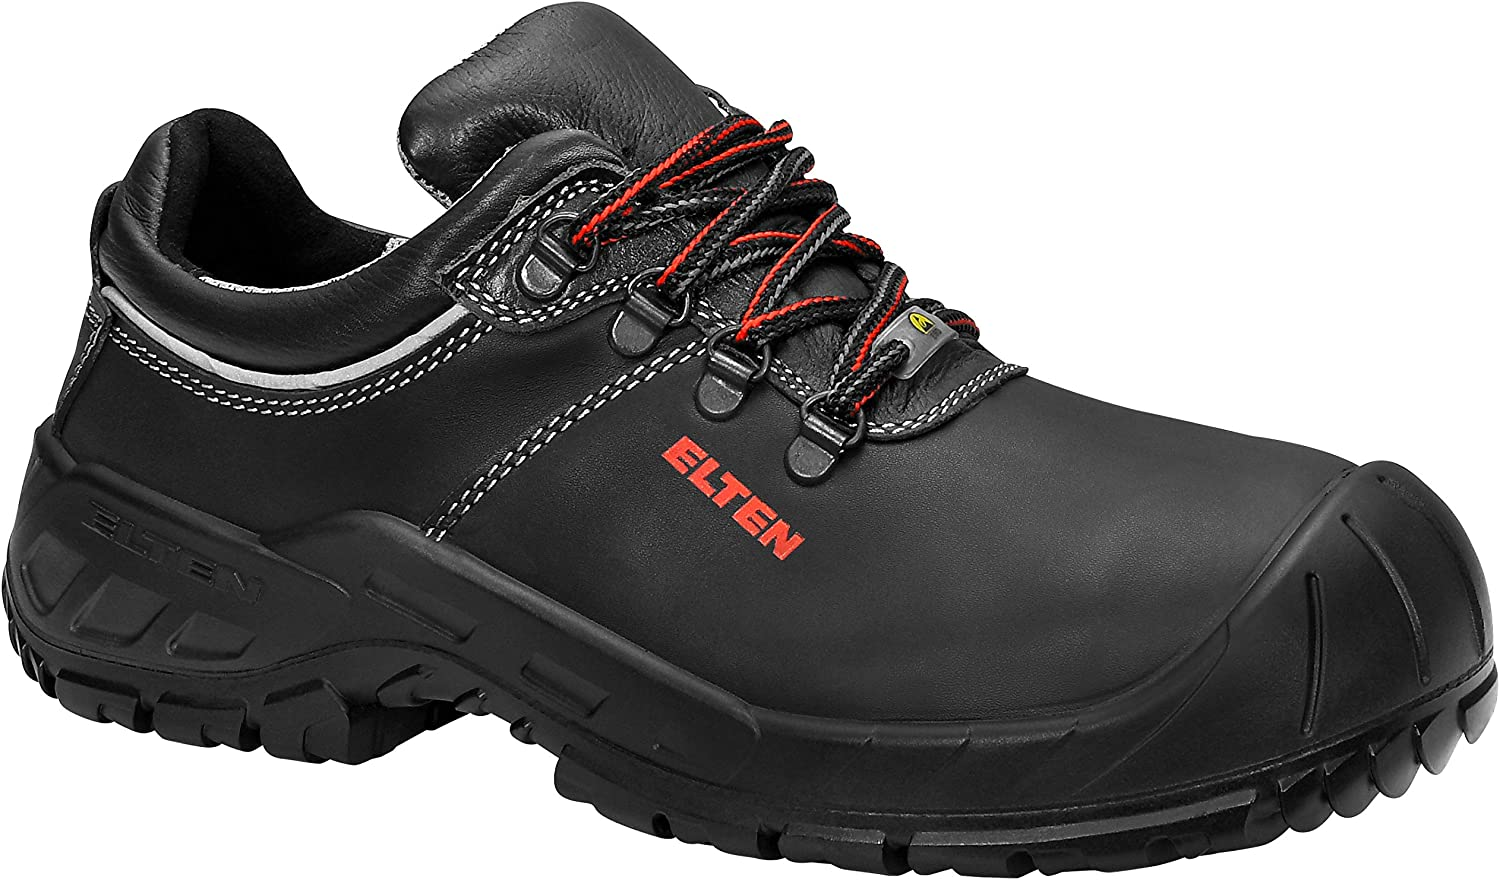 Elten 725841-48 Safety shoes Renzo Low  ESD S3, Size 12.5, black red